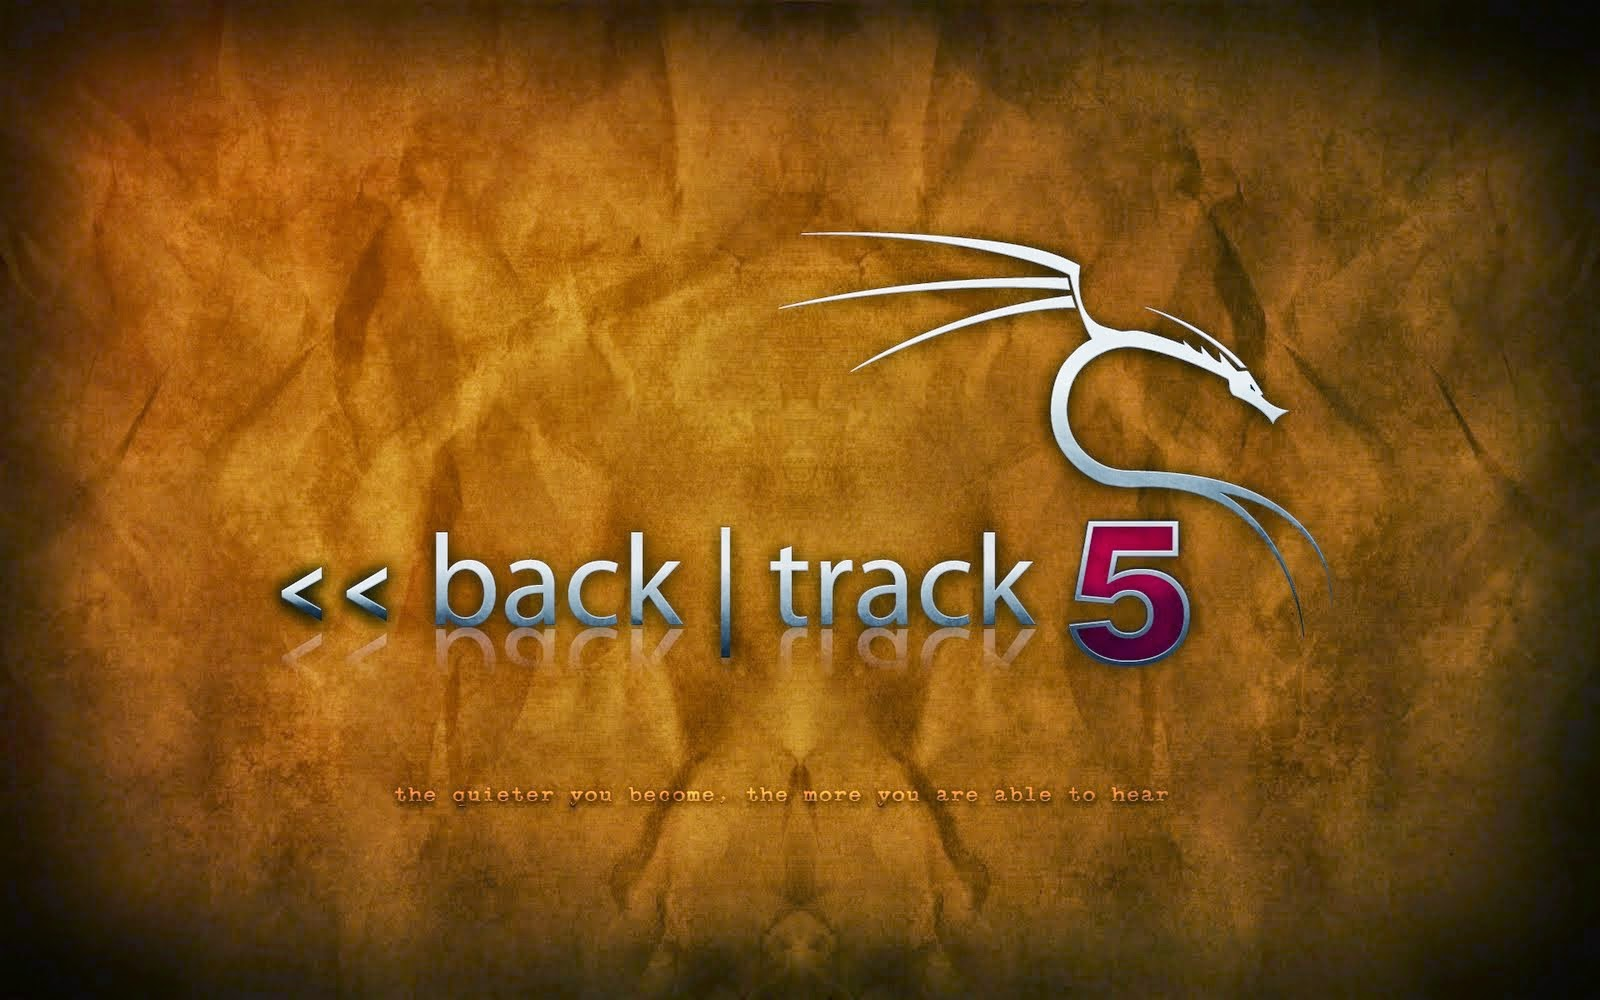 backtrack 5 r3 hacking wifi software free download